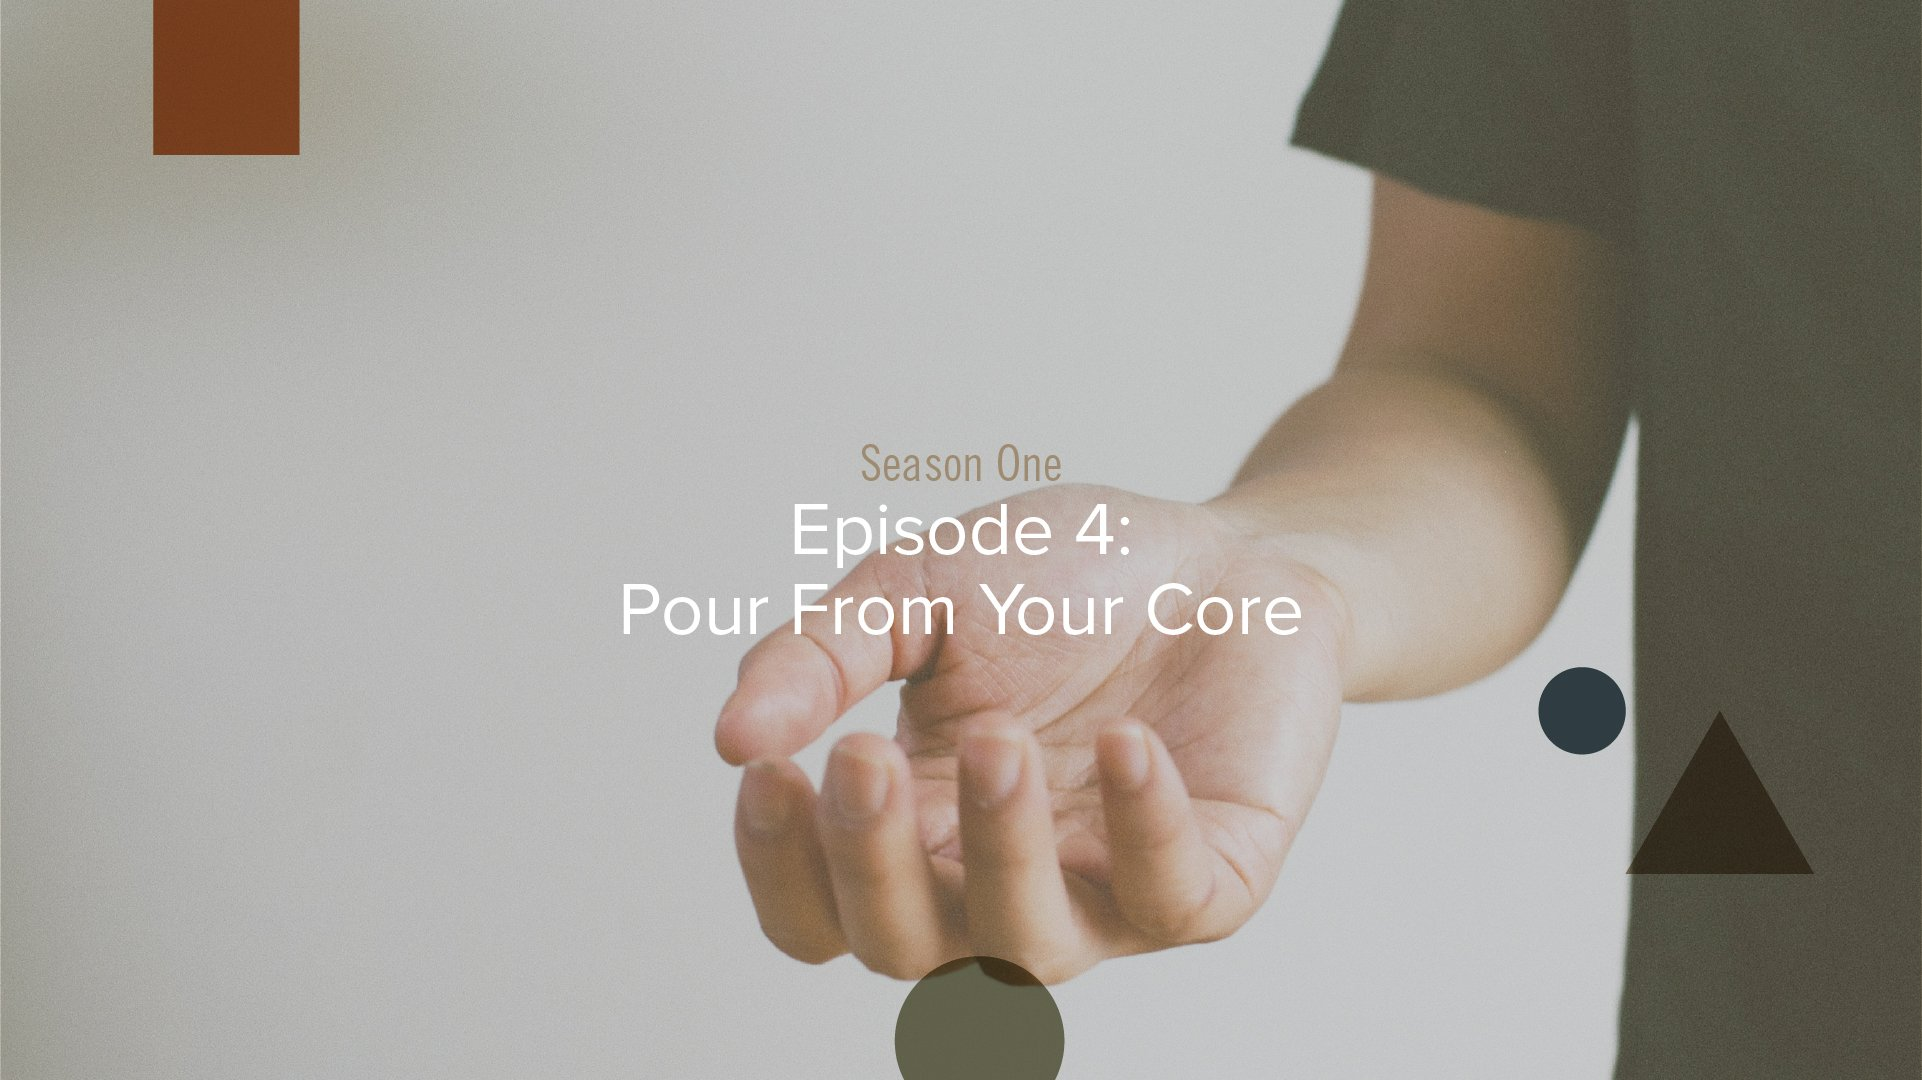 Metaphorically Speaking Podcast: Season 1 - Episode 4 - Pour From the Core